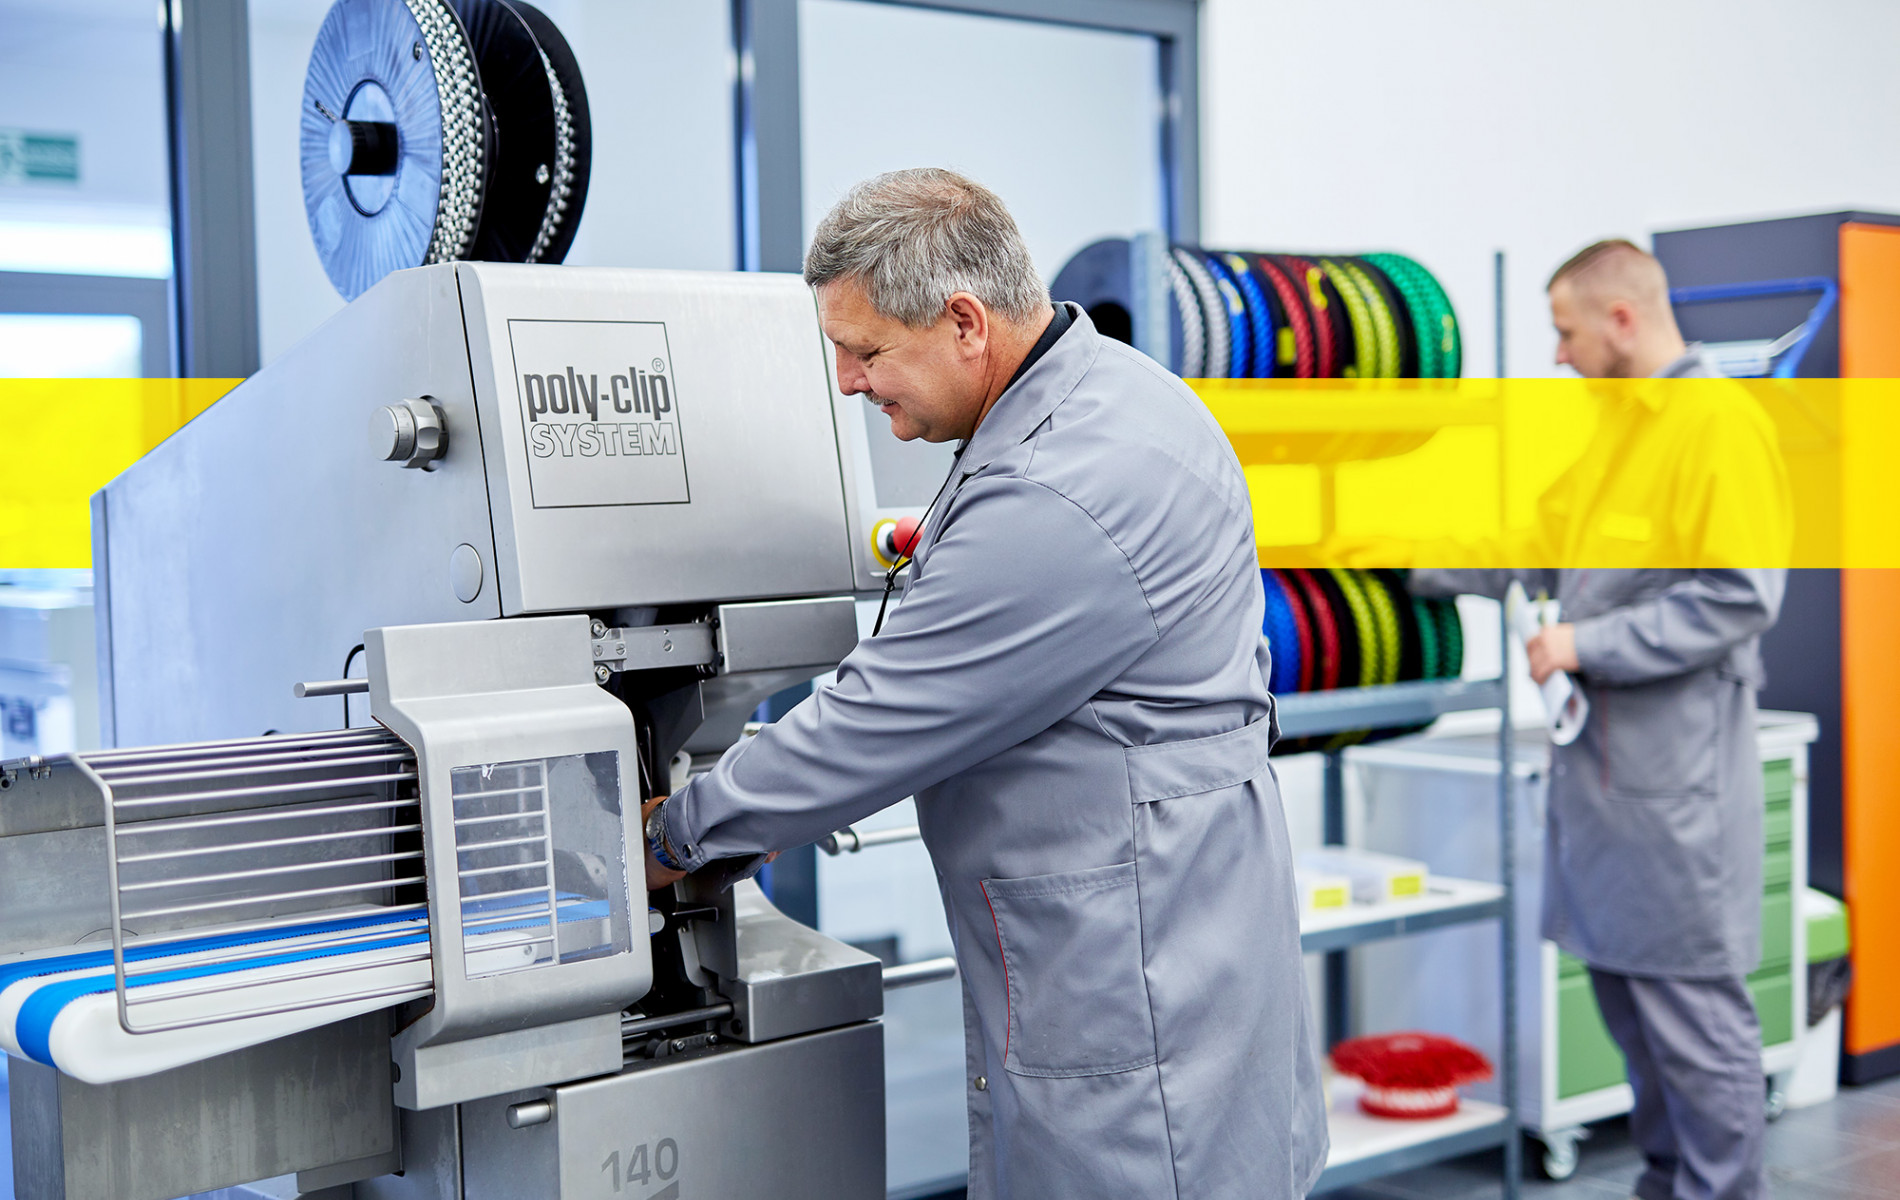 service employee working in front of machine consumables